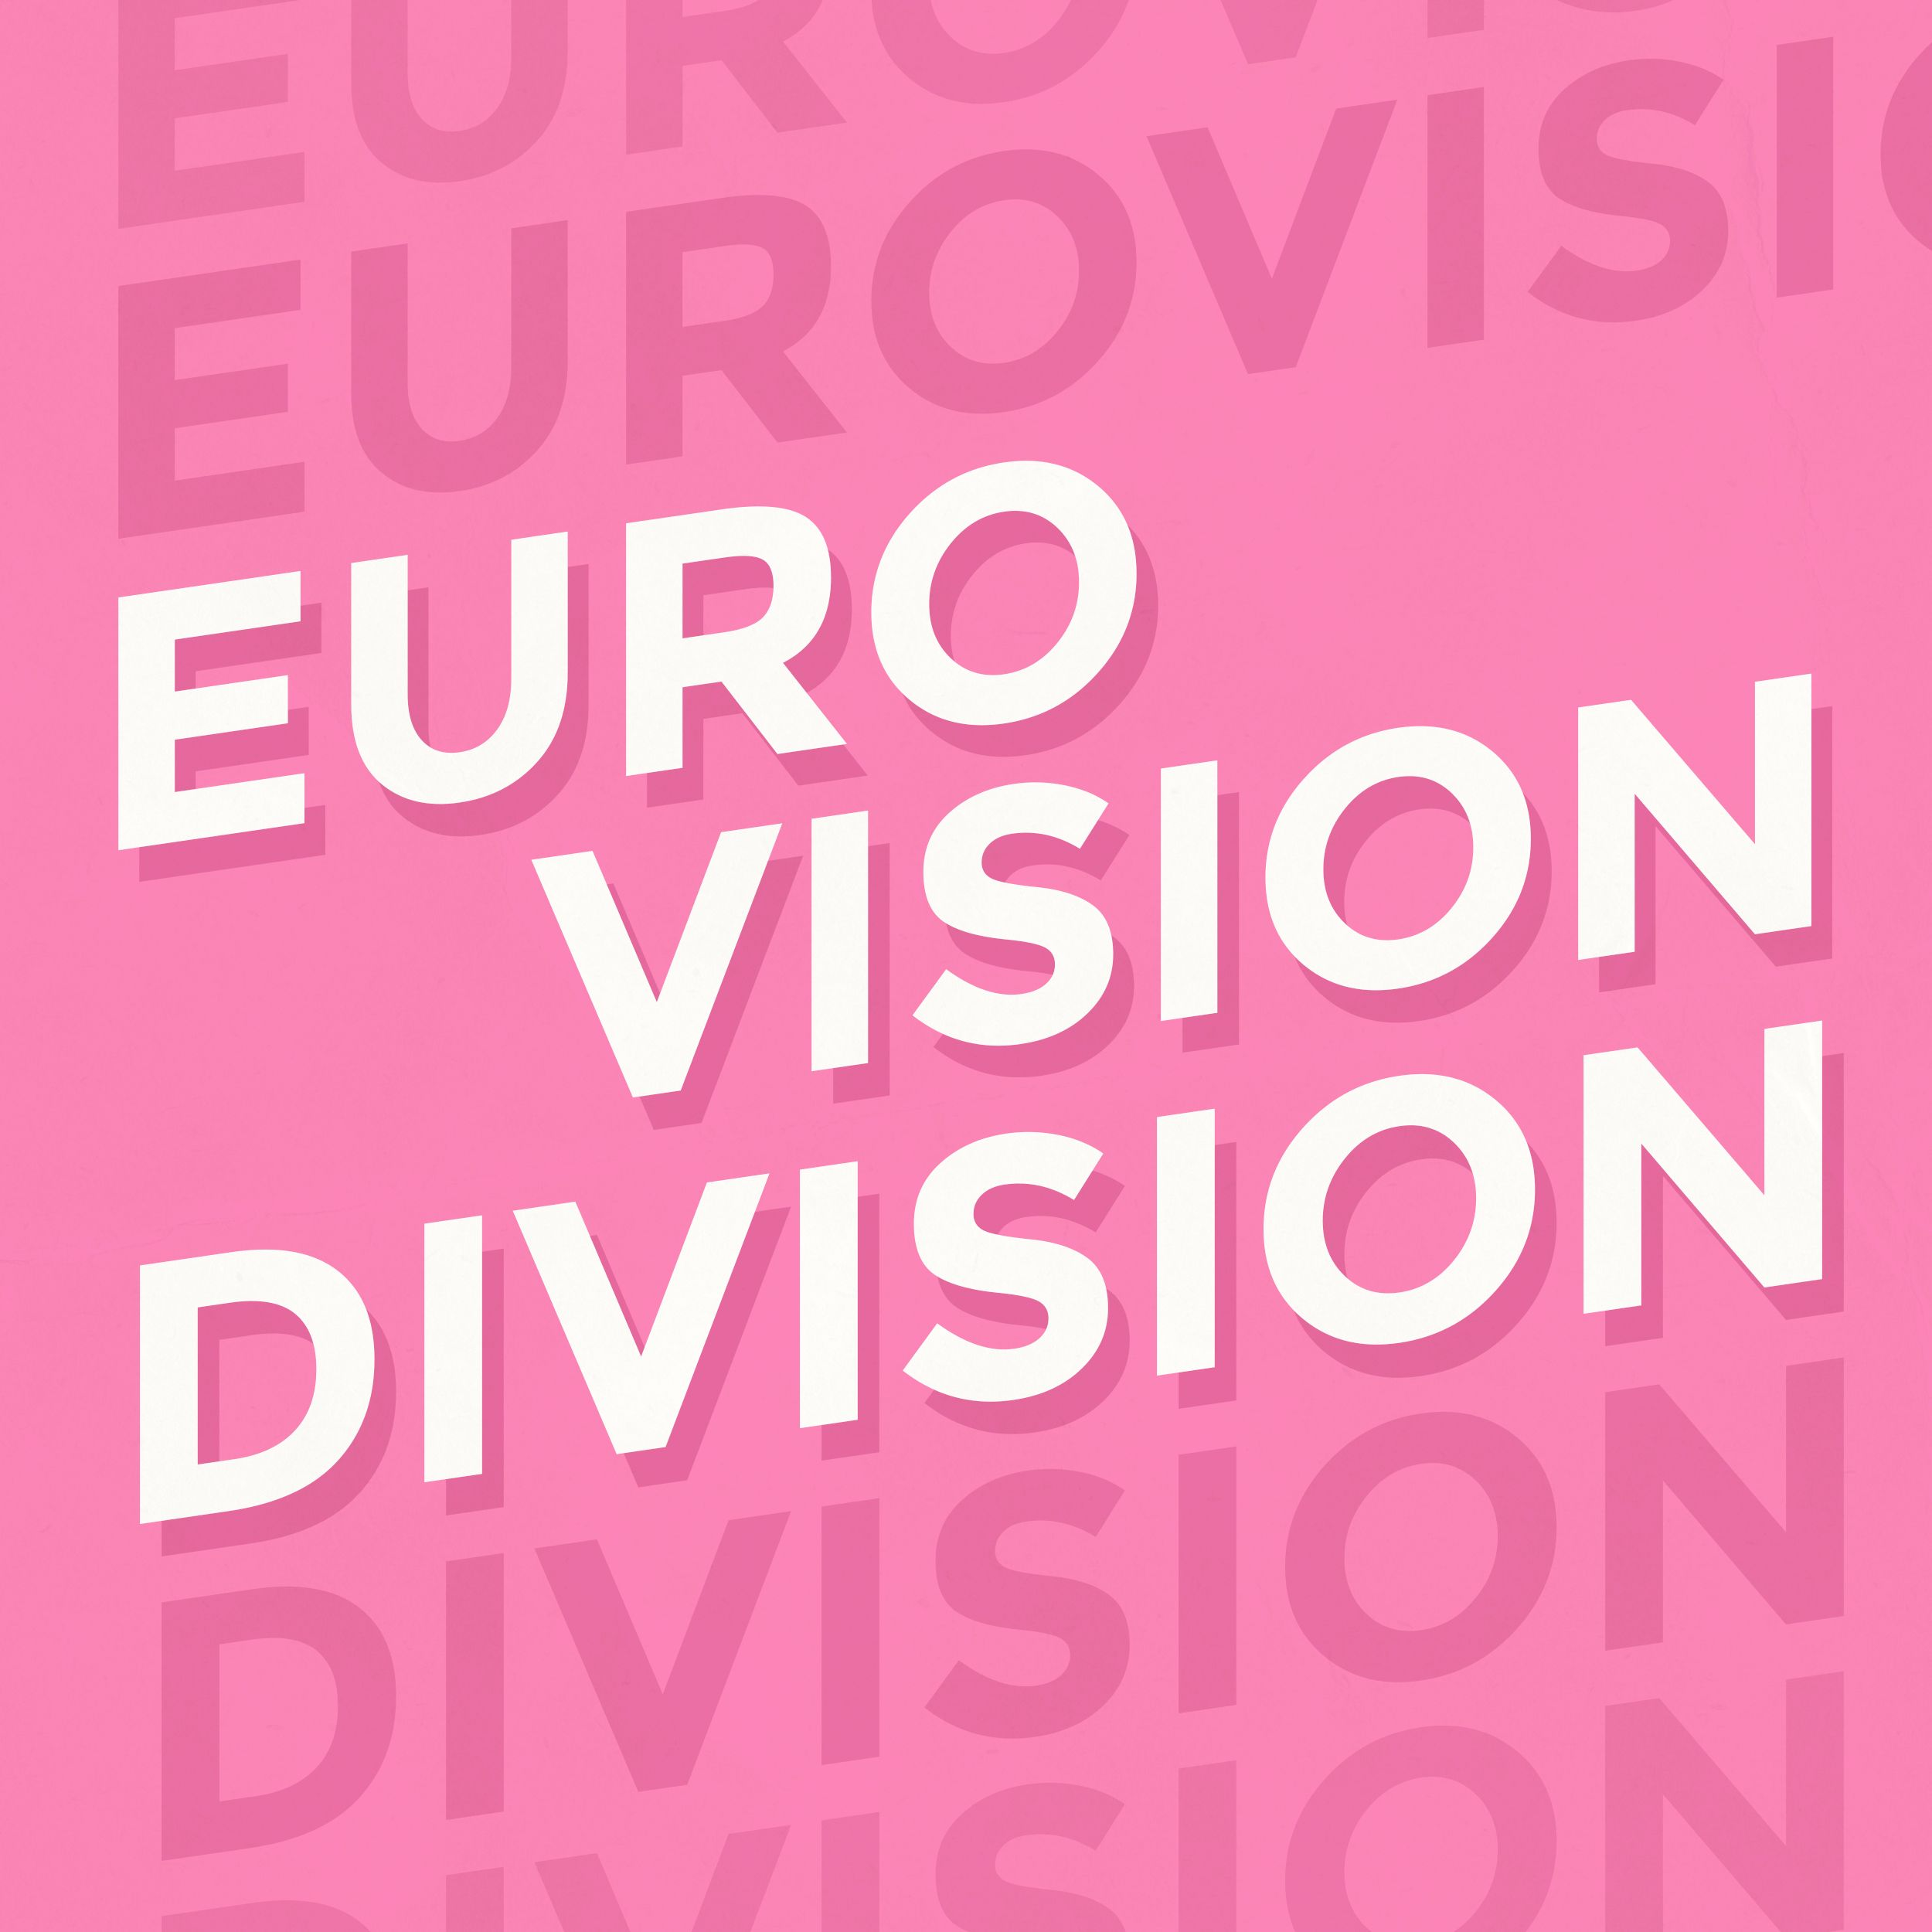 2021 - A Very Sweet Eurovision